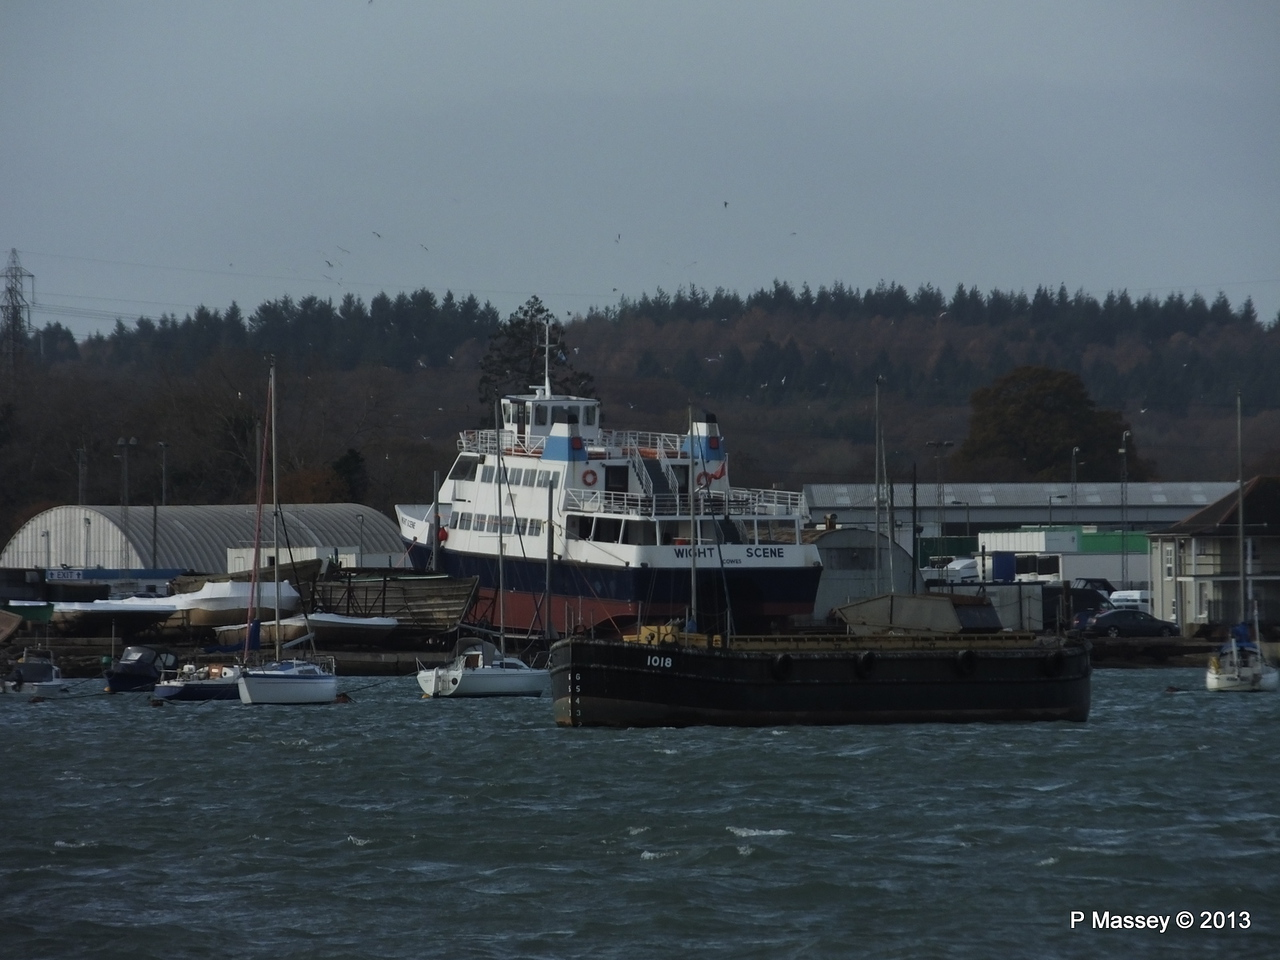 WIGHT SCENE Husbands Shipyard PDM 05-12-2013 11-15-26